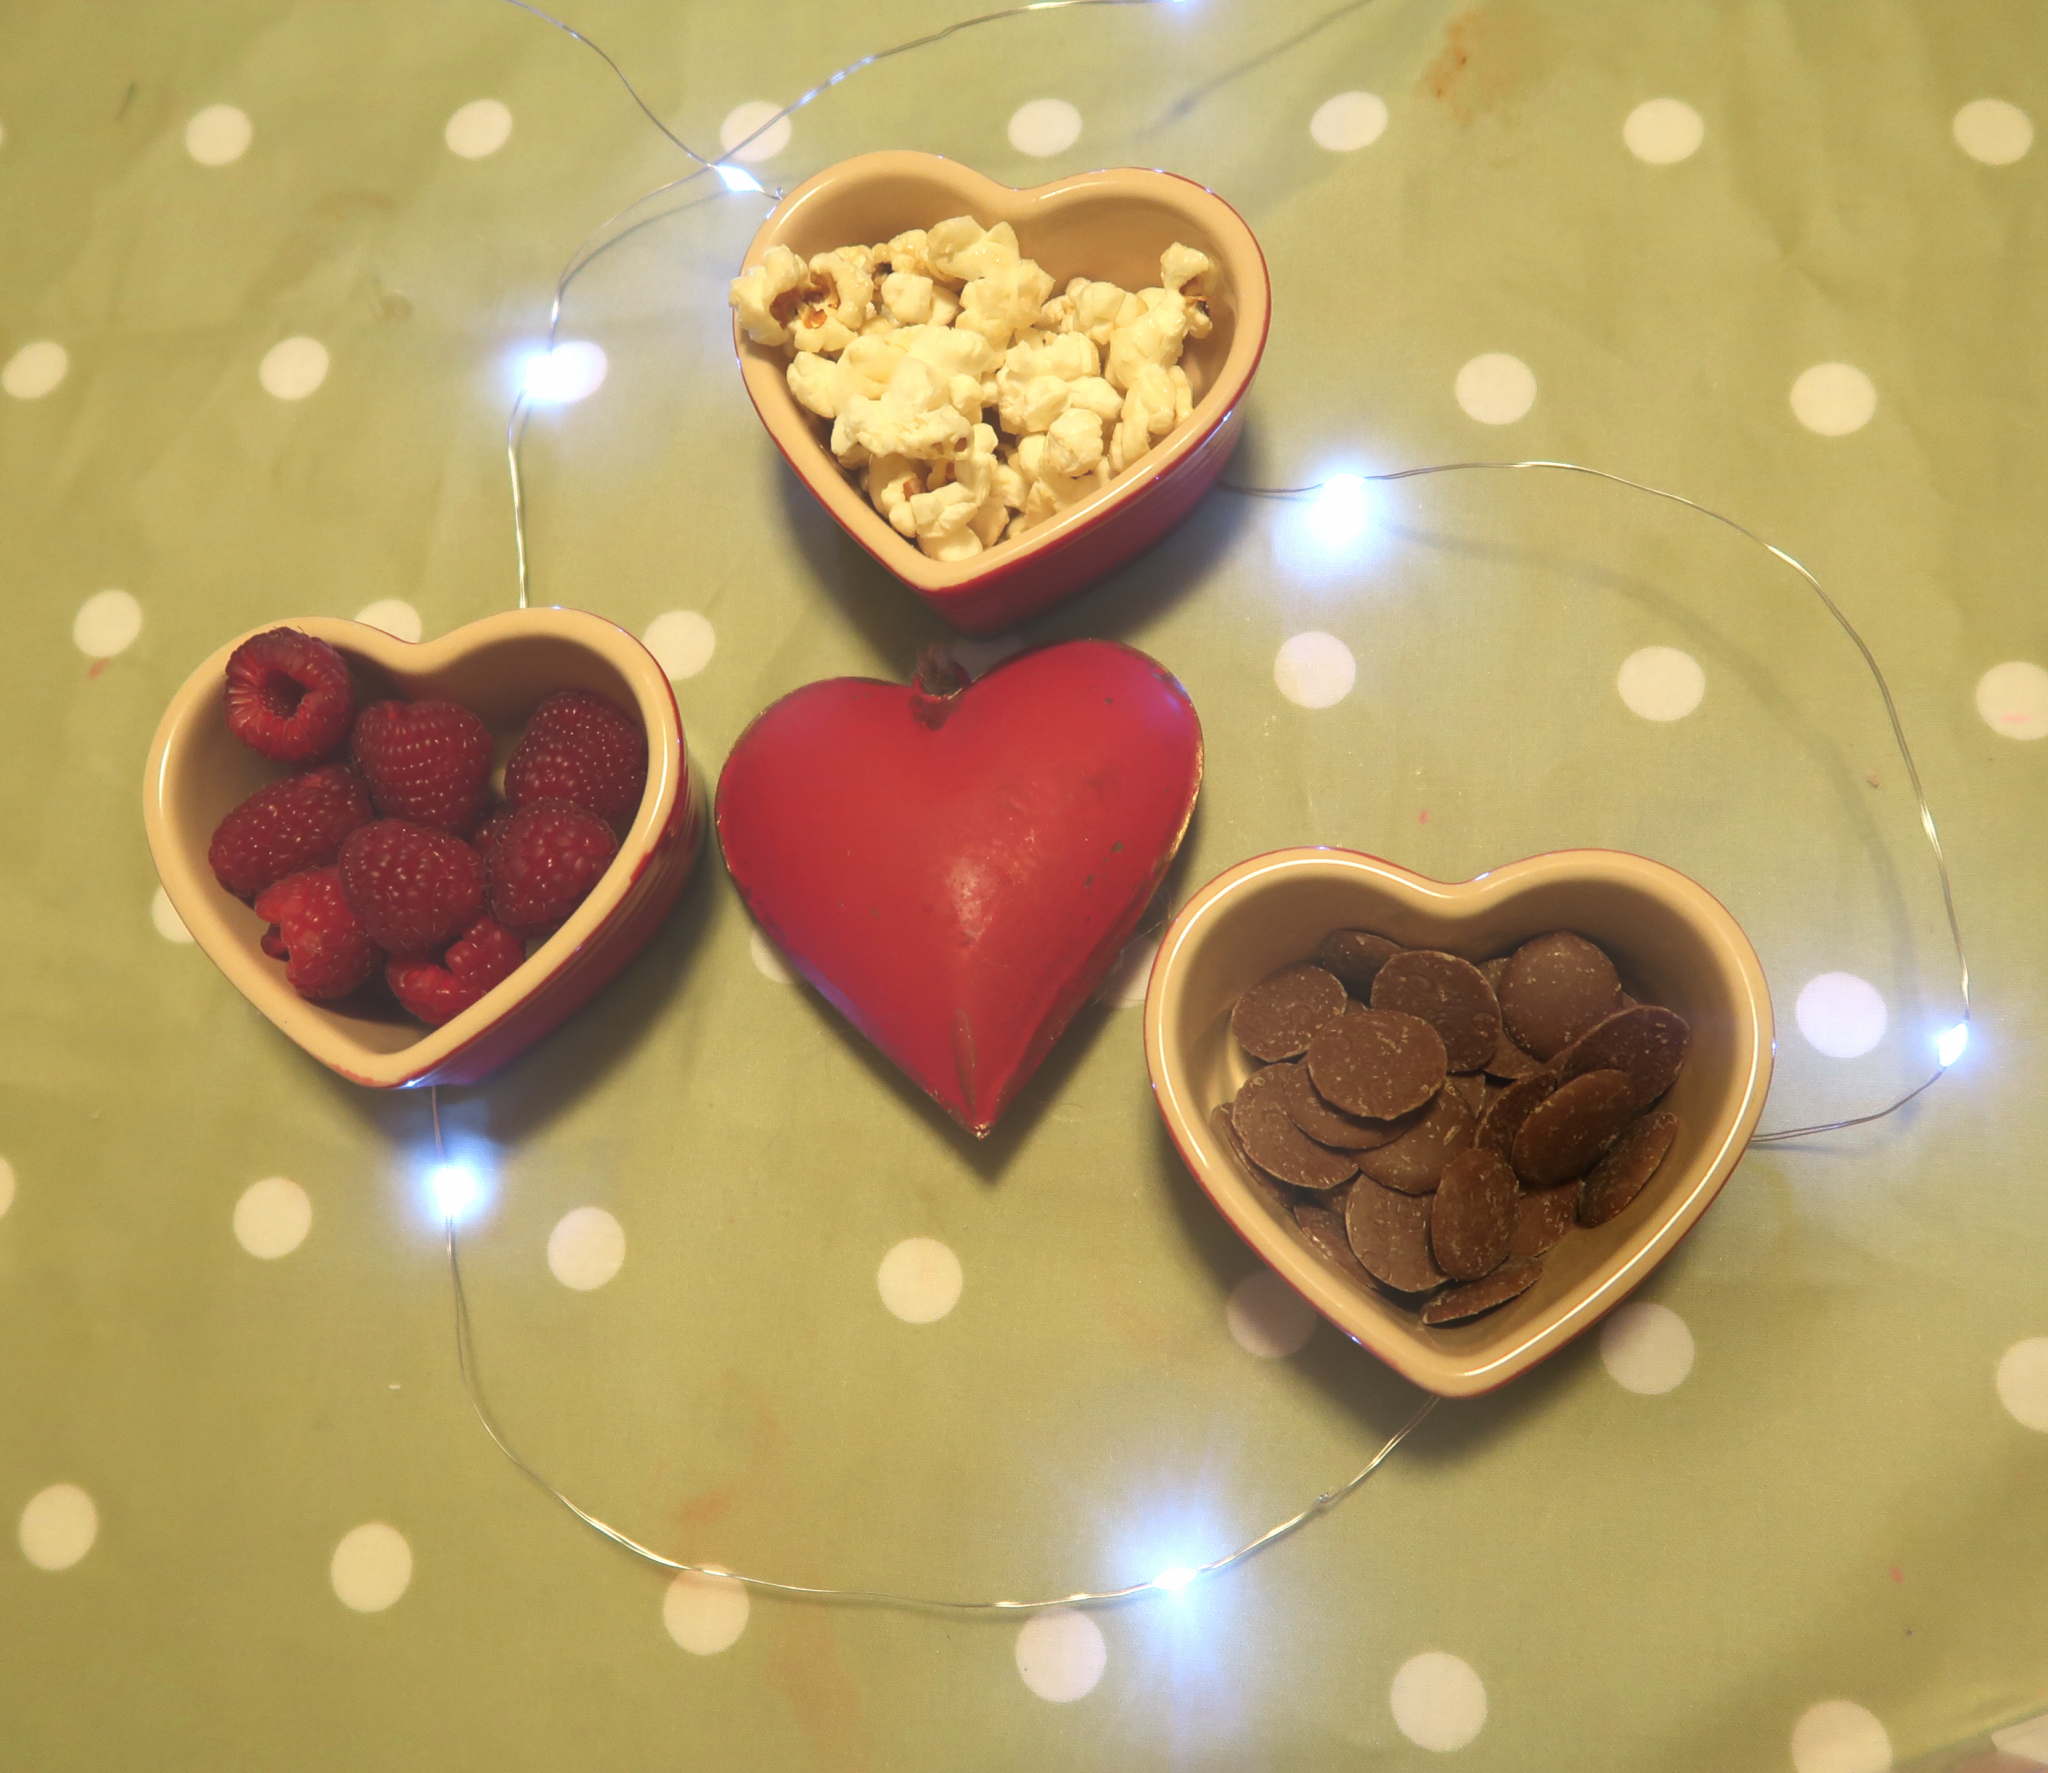 buttons, raspberries and popcorn in heart pots